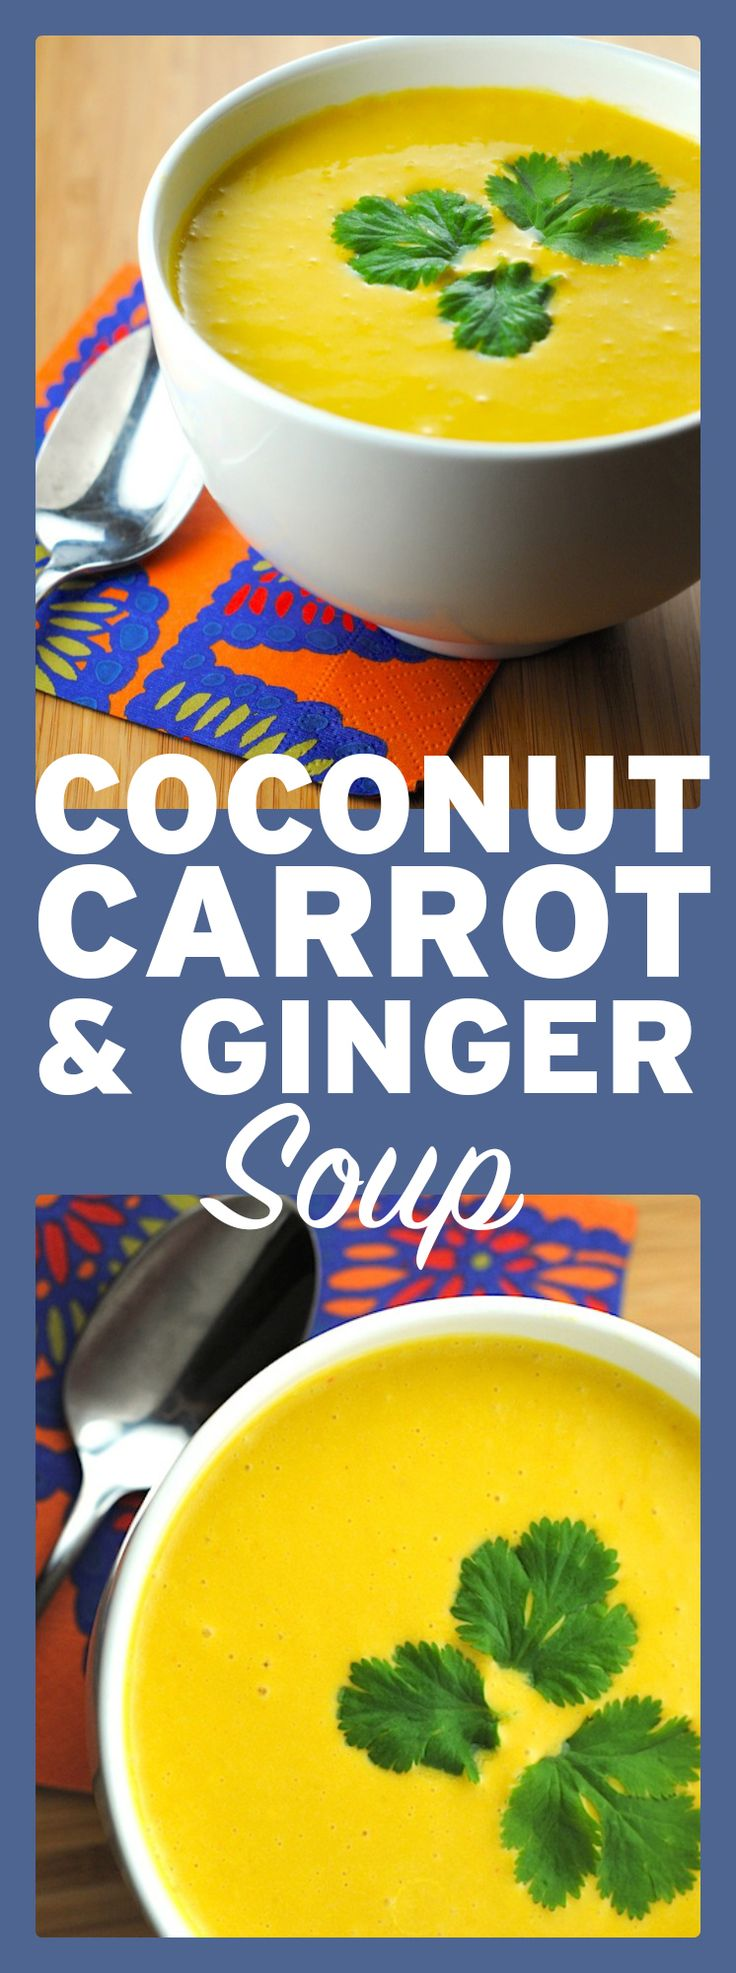 Easy coconut, carrot and ginger soup recipe! This healthy soup is easy to make vegan (skip the fish sauce and use soy sauce). Full of flavour!  http://theblenderist.com/carrot-soup-ginger-coconut-milk/